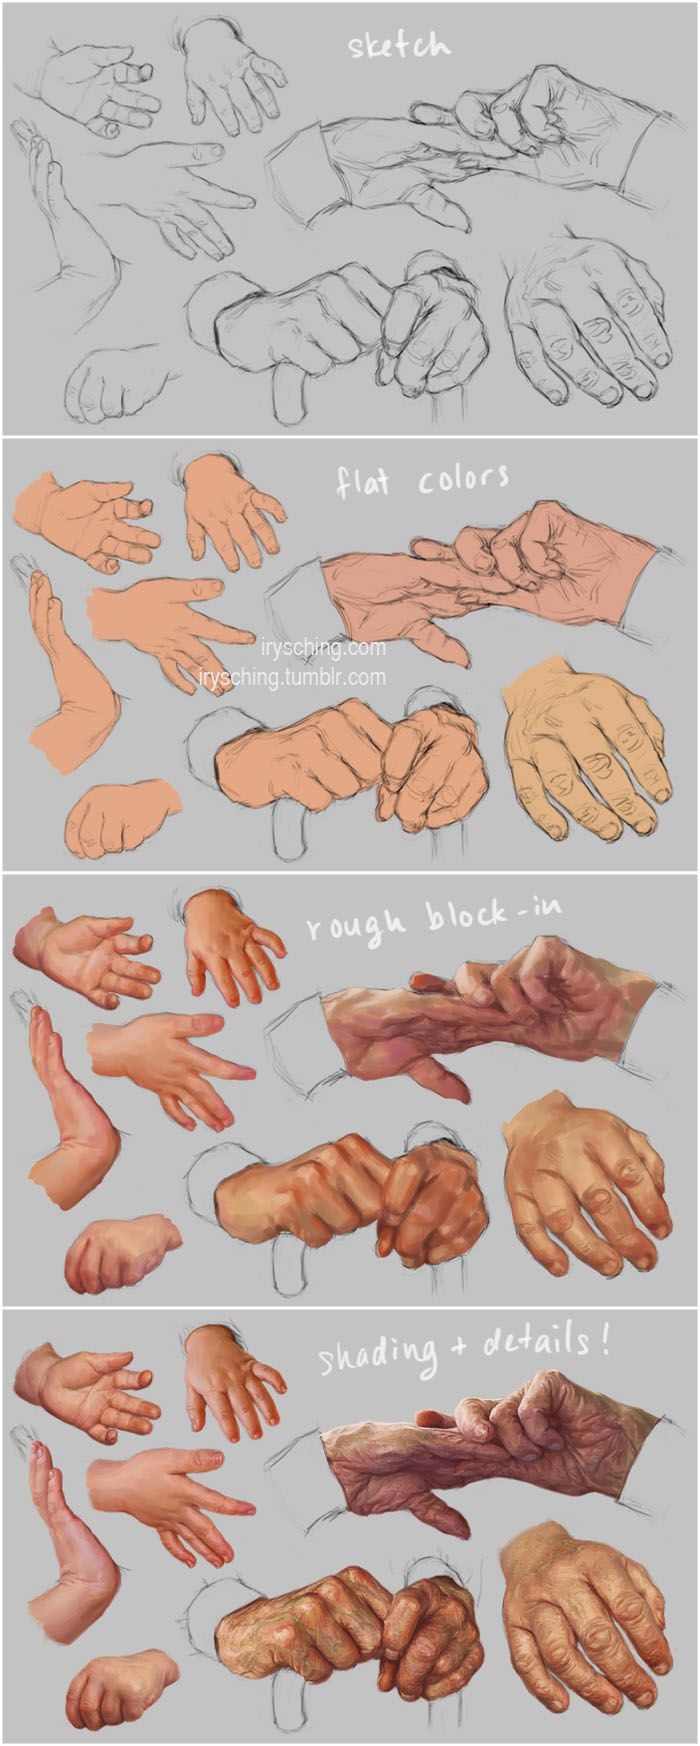 Hand Study 3 - Young and Old - Steps by irysching.deviantart.com on @deviantART